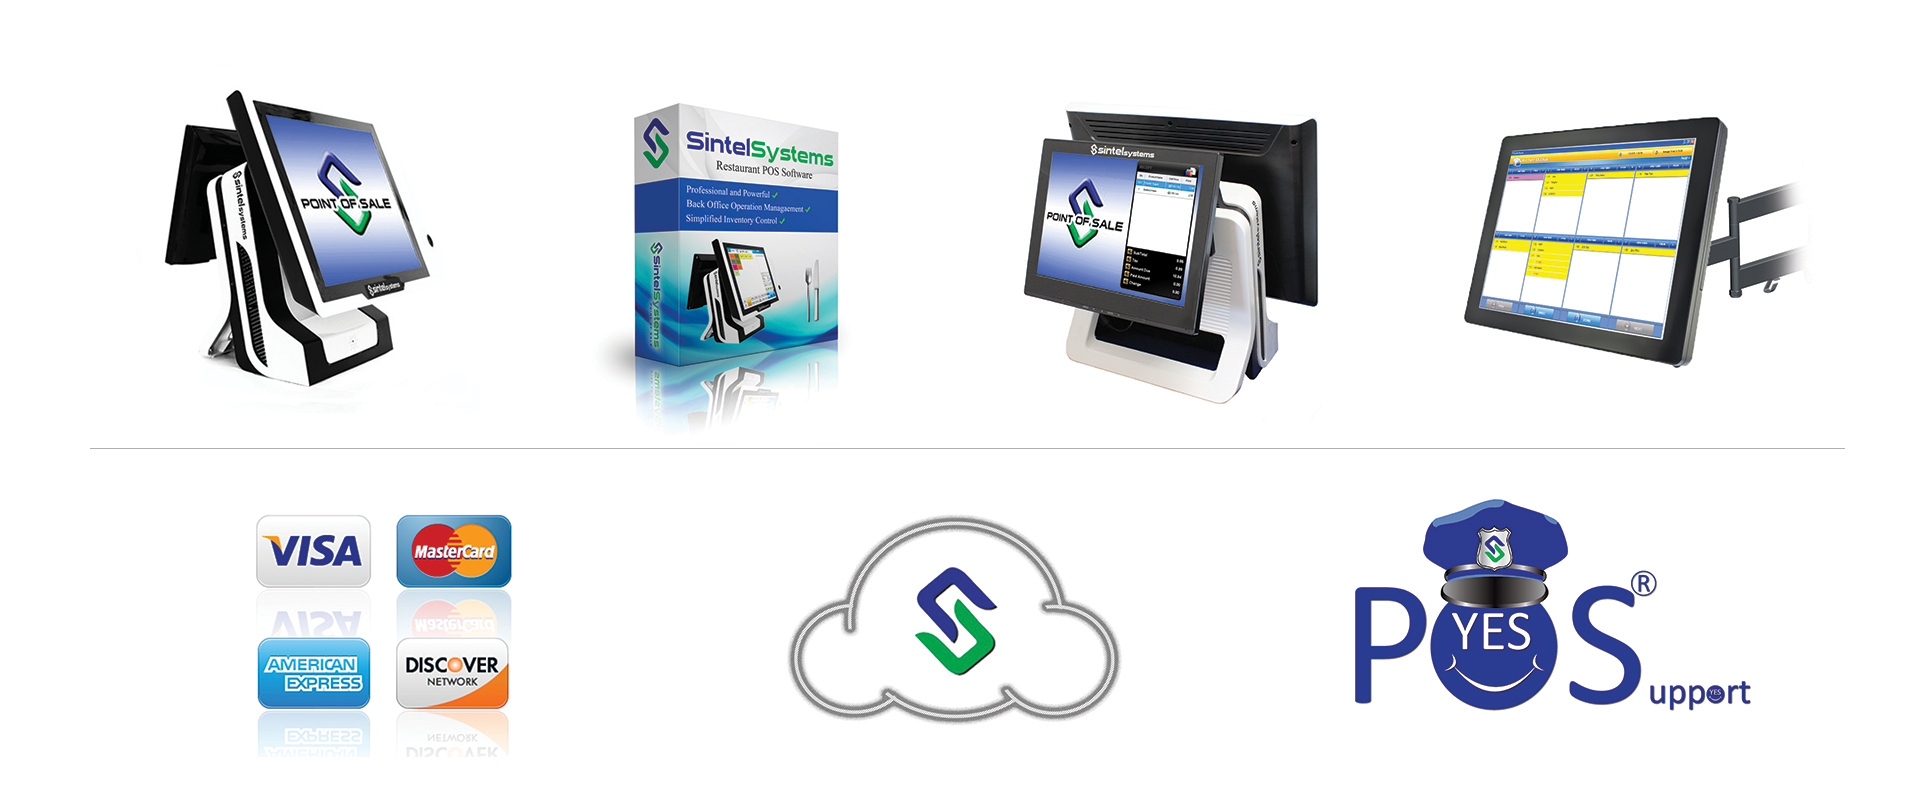 Sintel-Systems-Best-POS-Complete